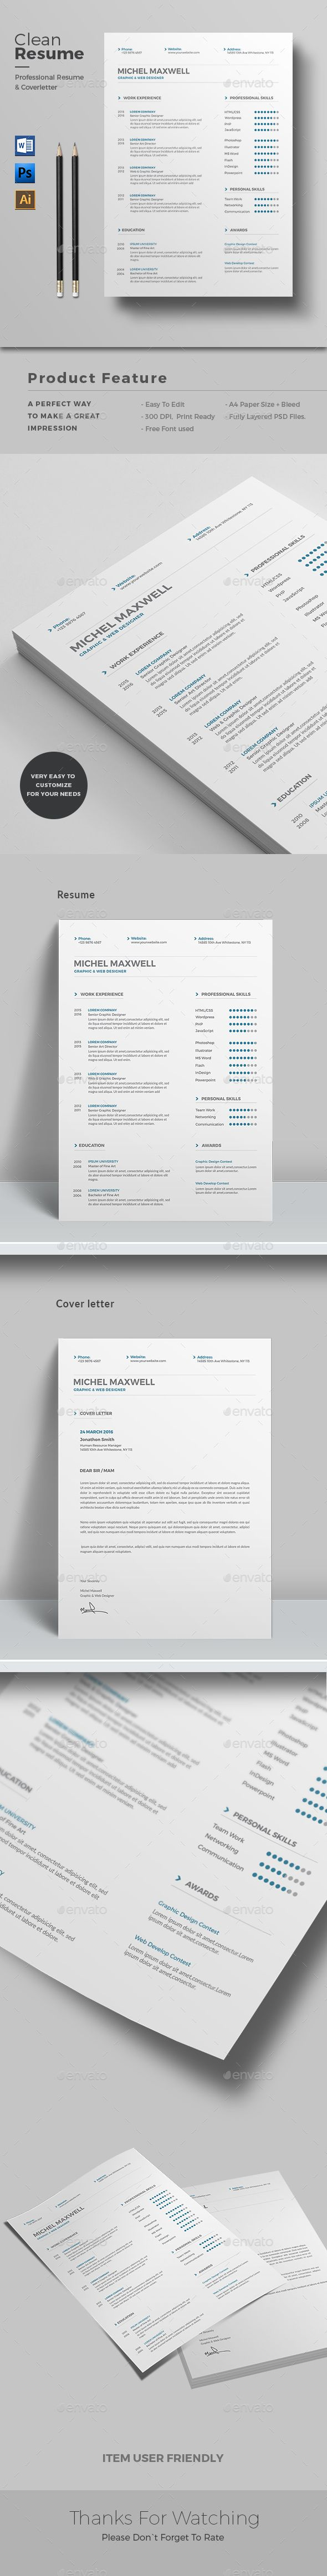 CV Word 108 best bewerbung images on